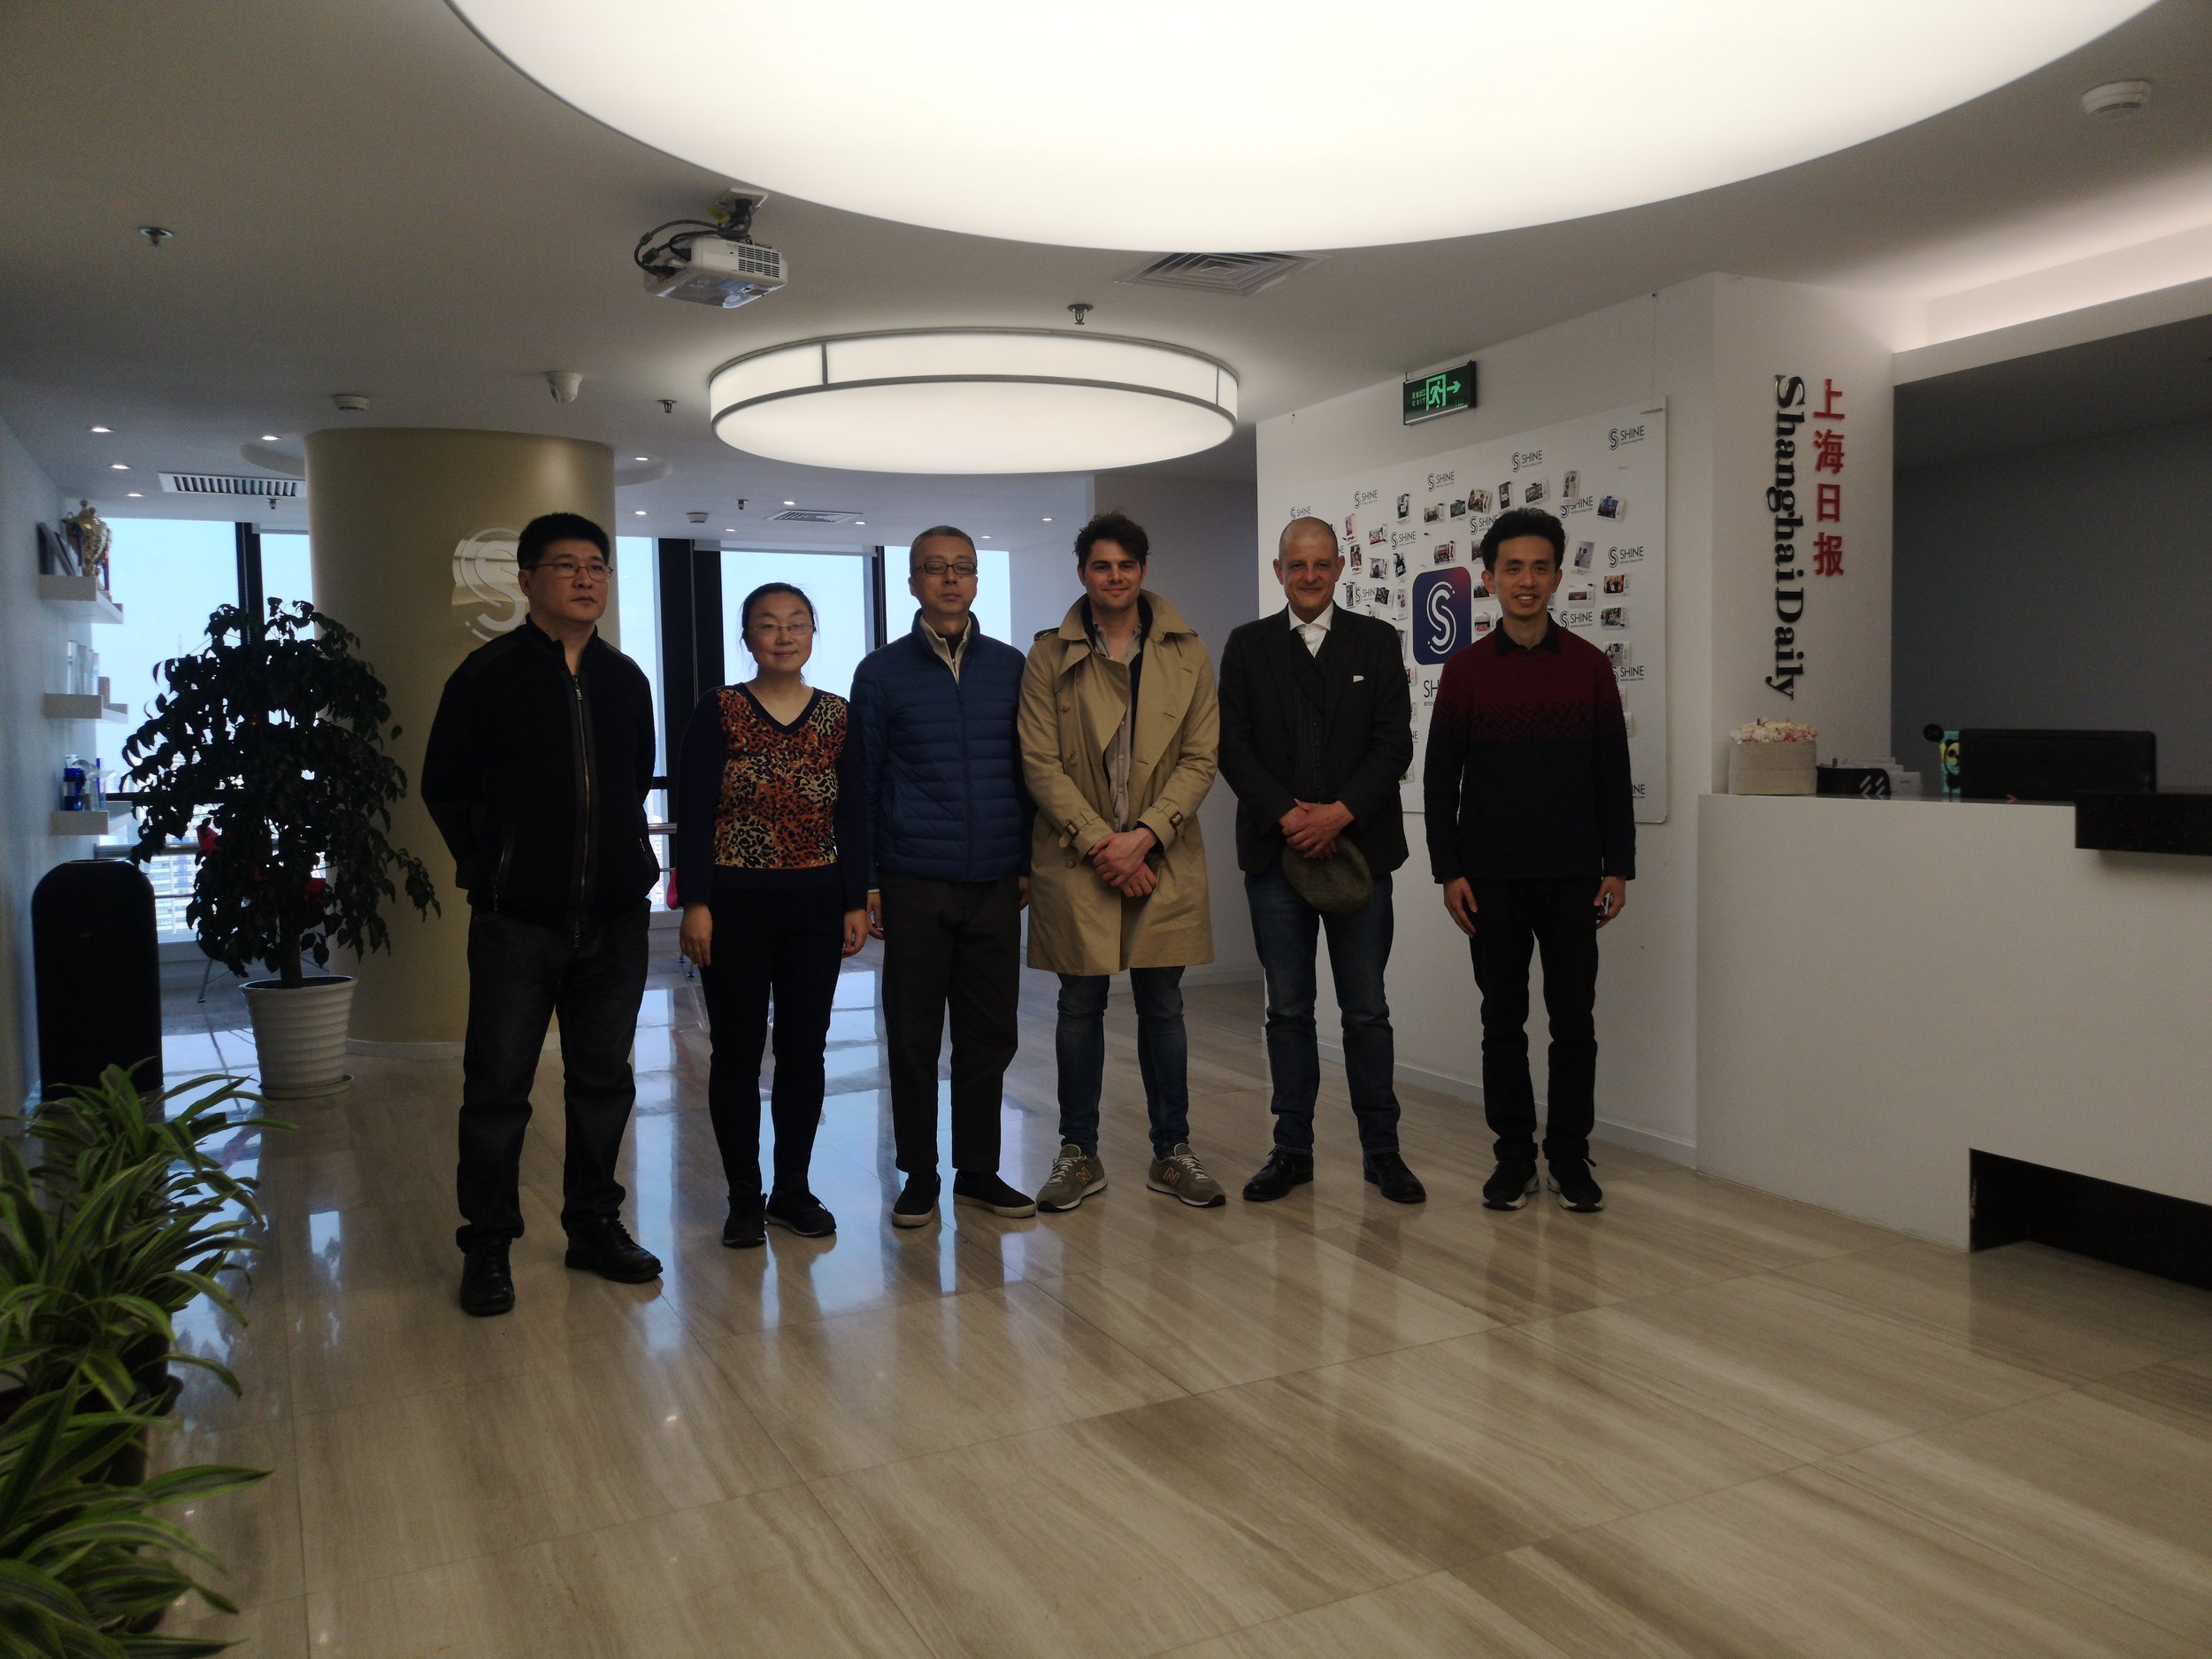 Tamedia delegation with the Shanghai Daily editors.